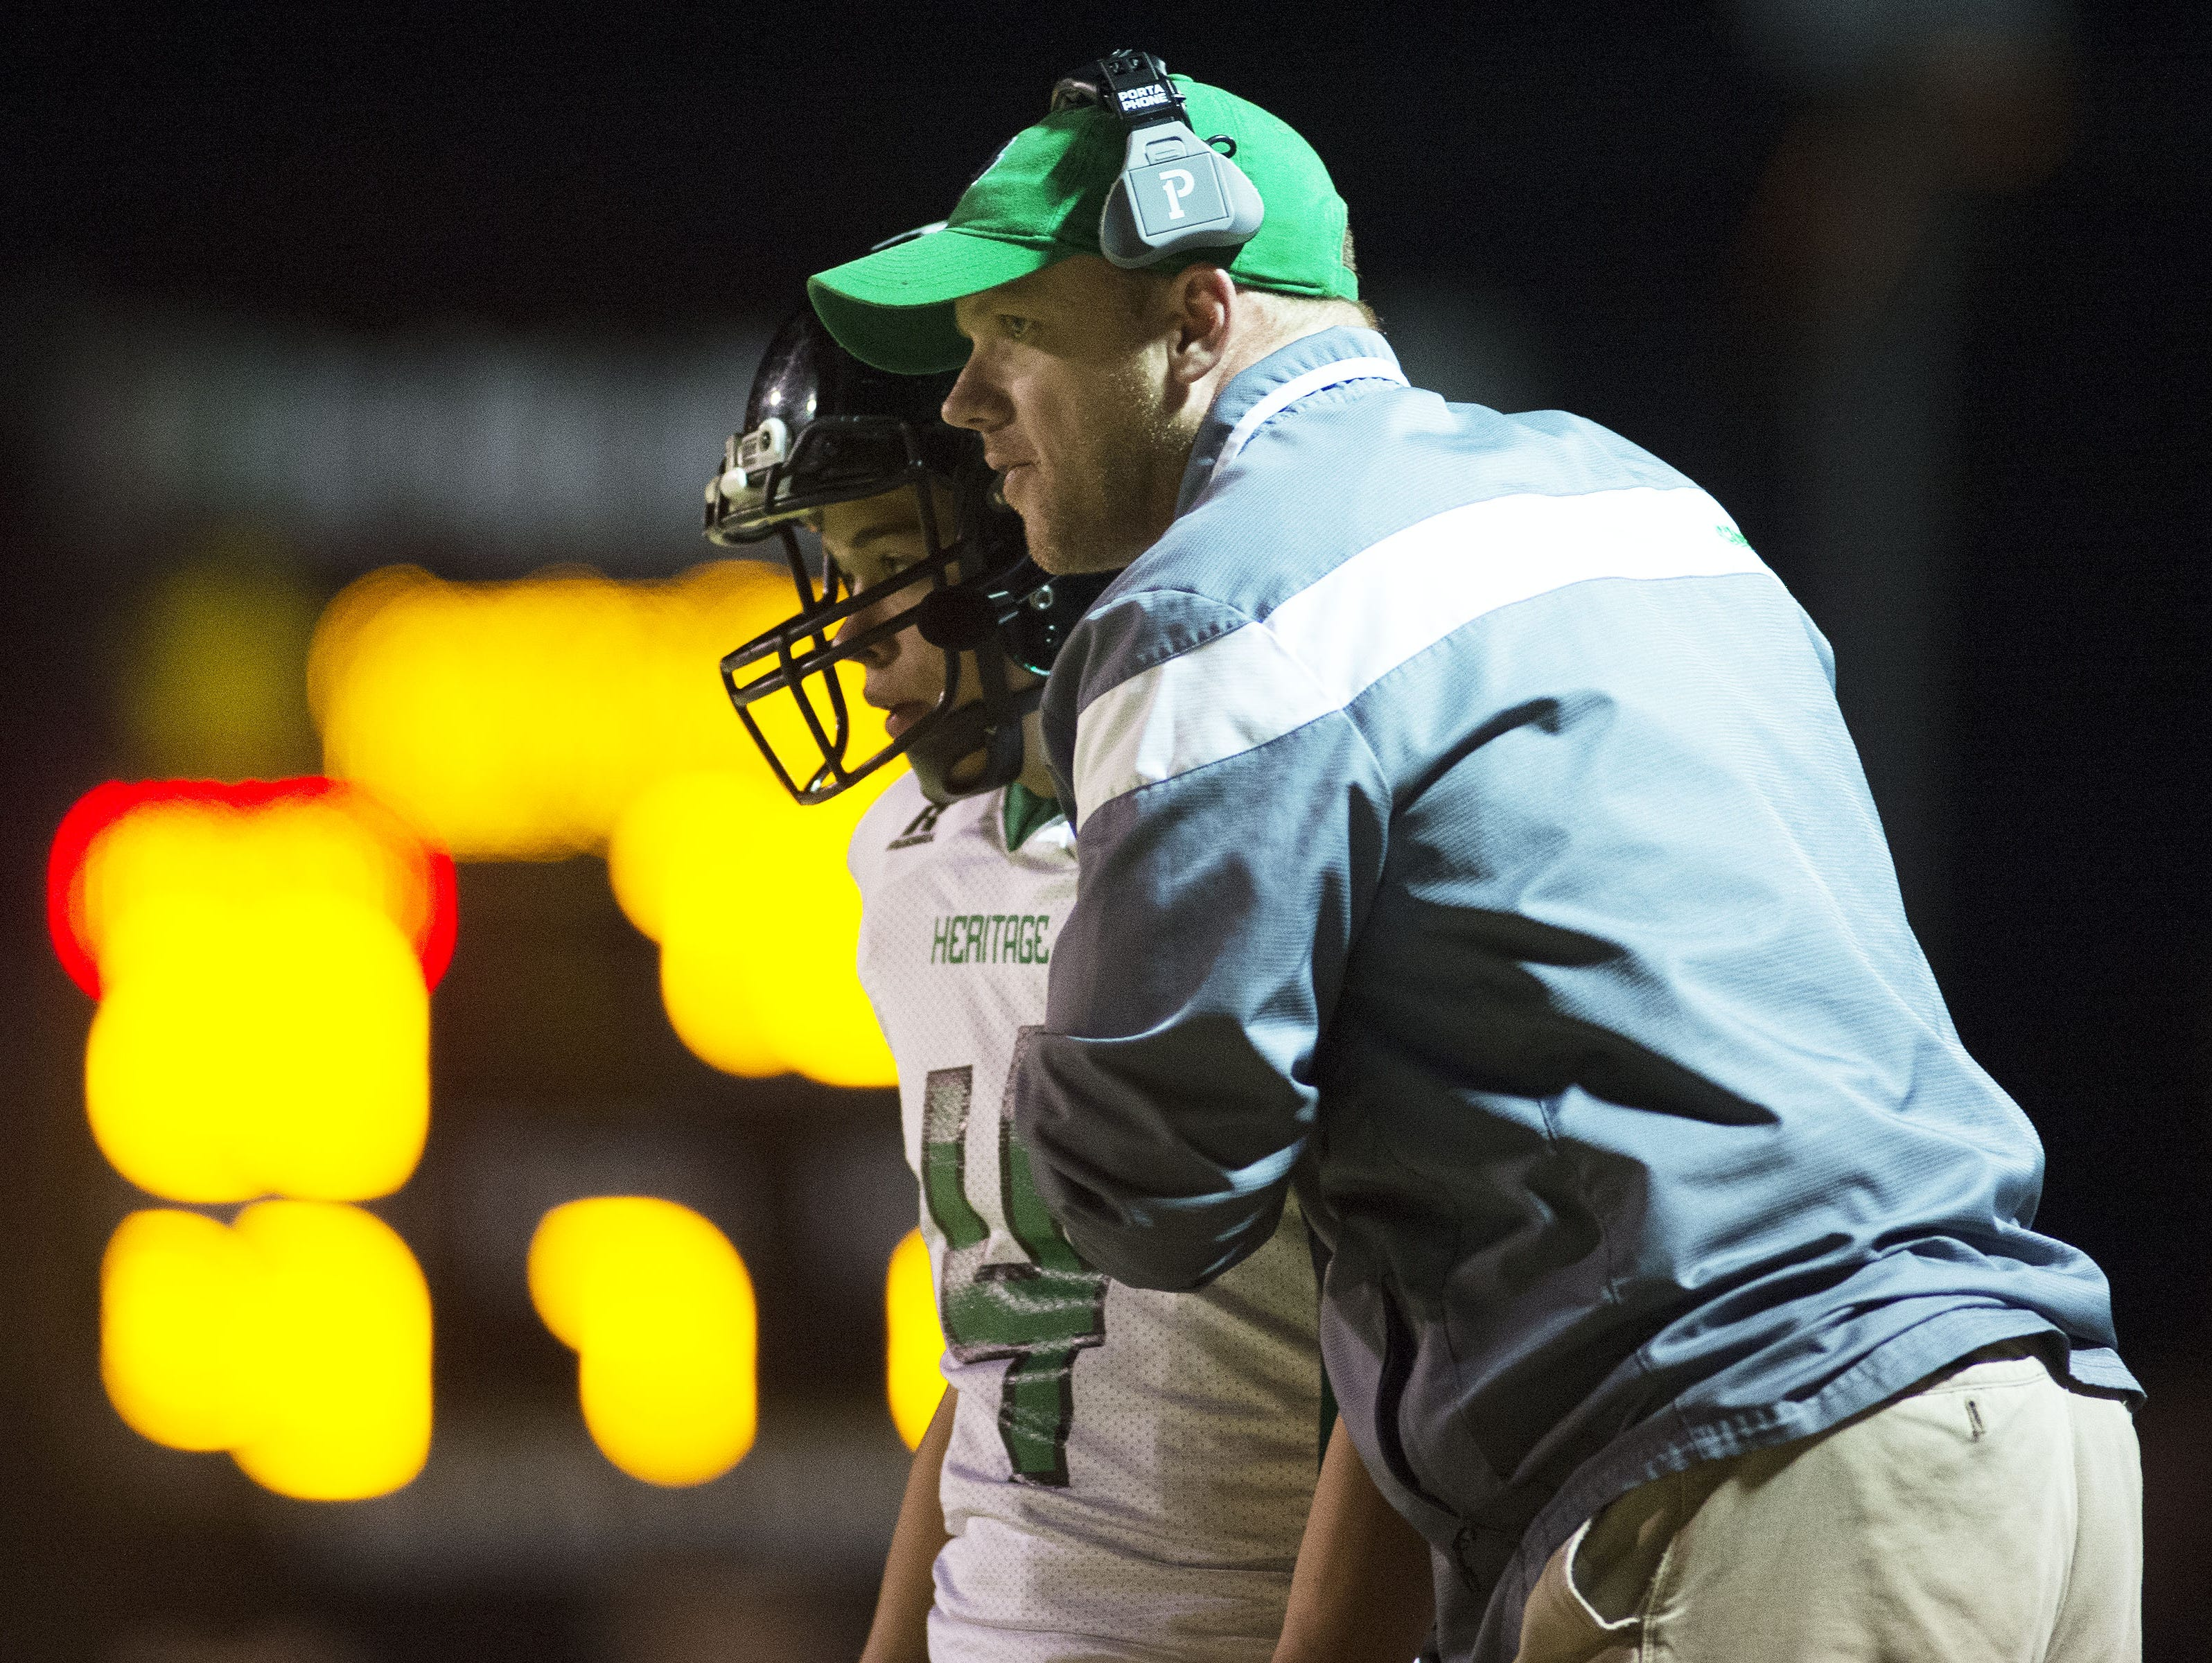 Western Highlands Conference president Joey Robinson is also the athletic director and football coach at Mountain Heritage.